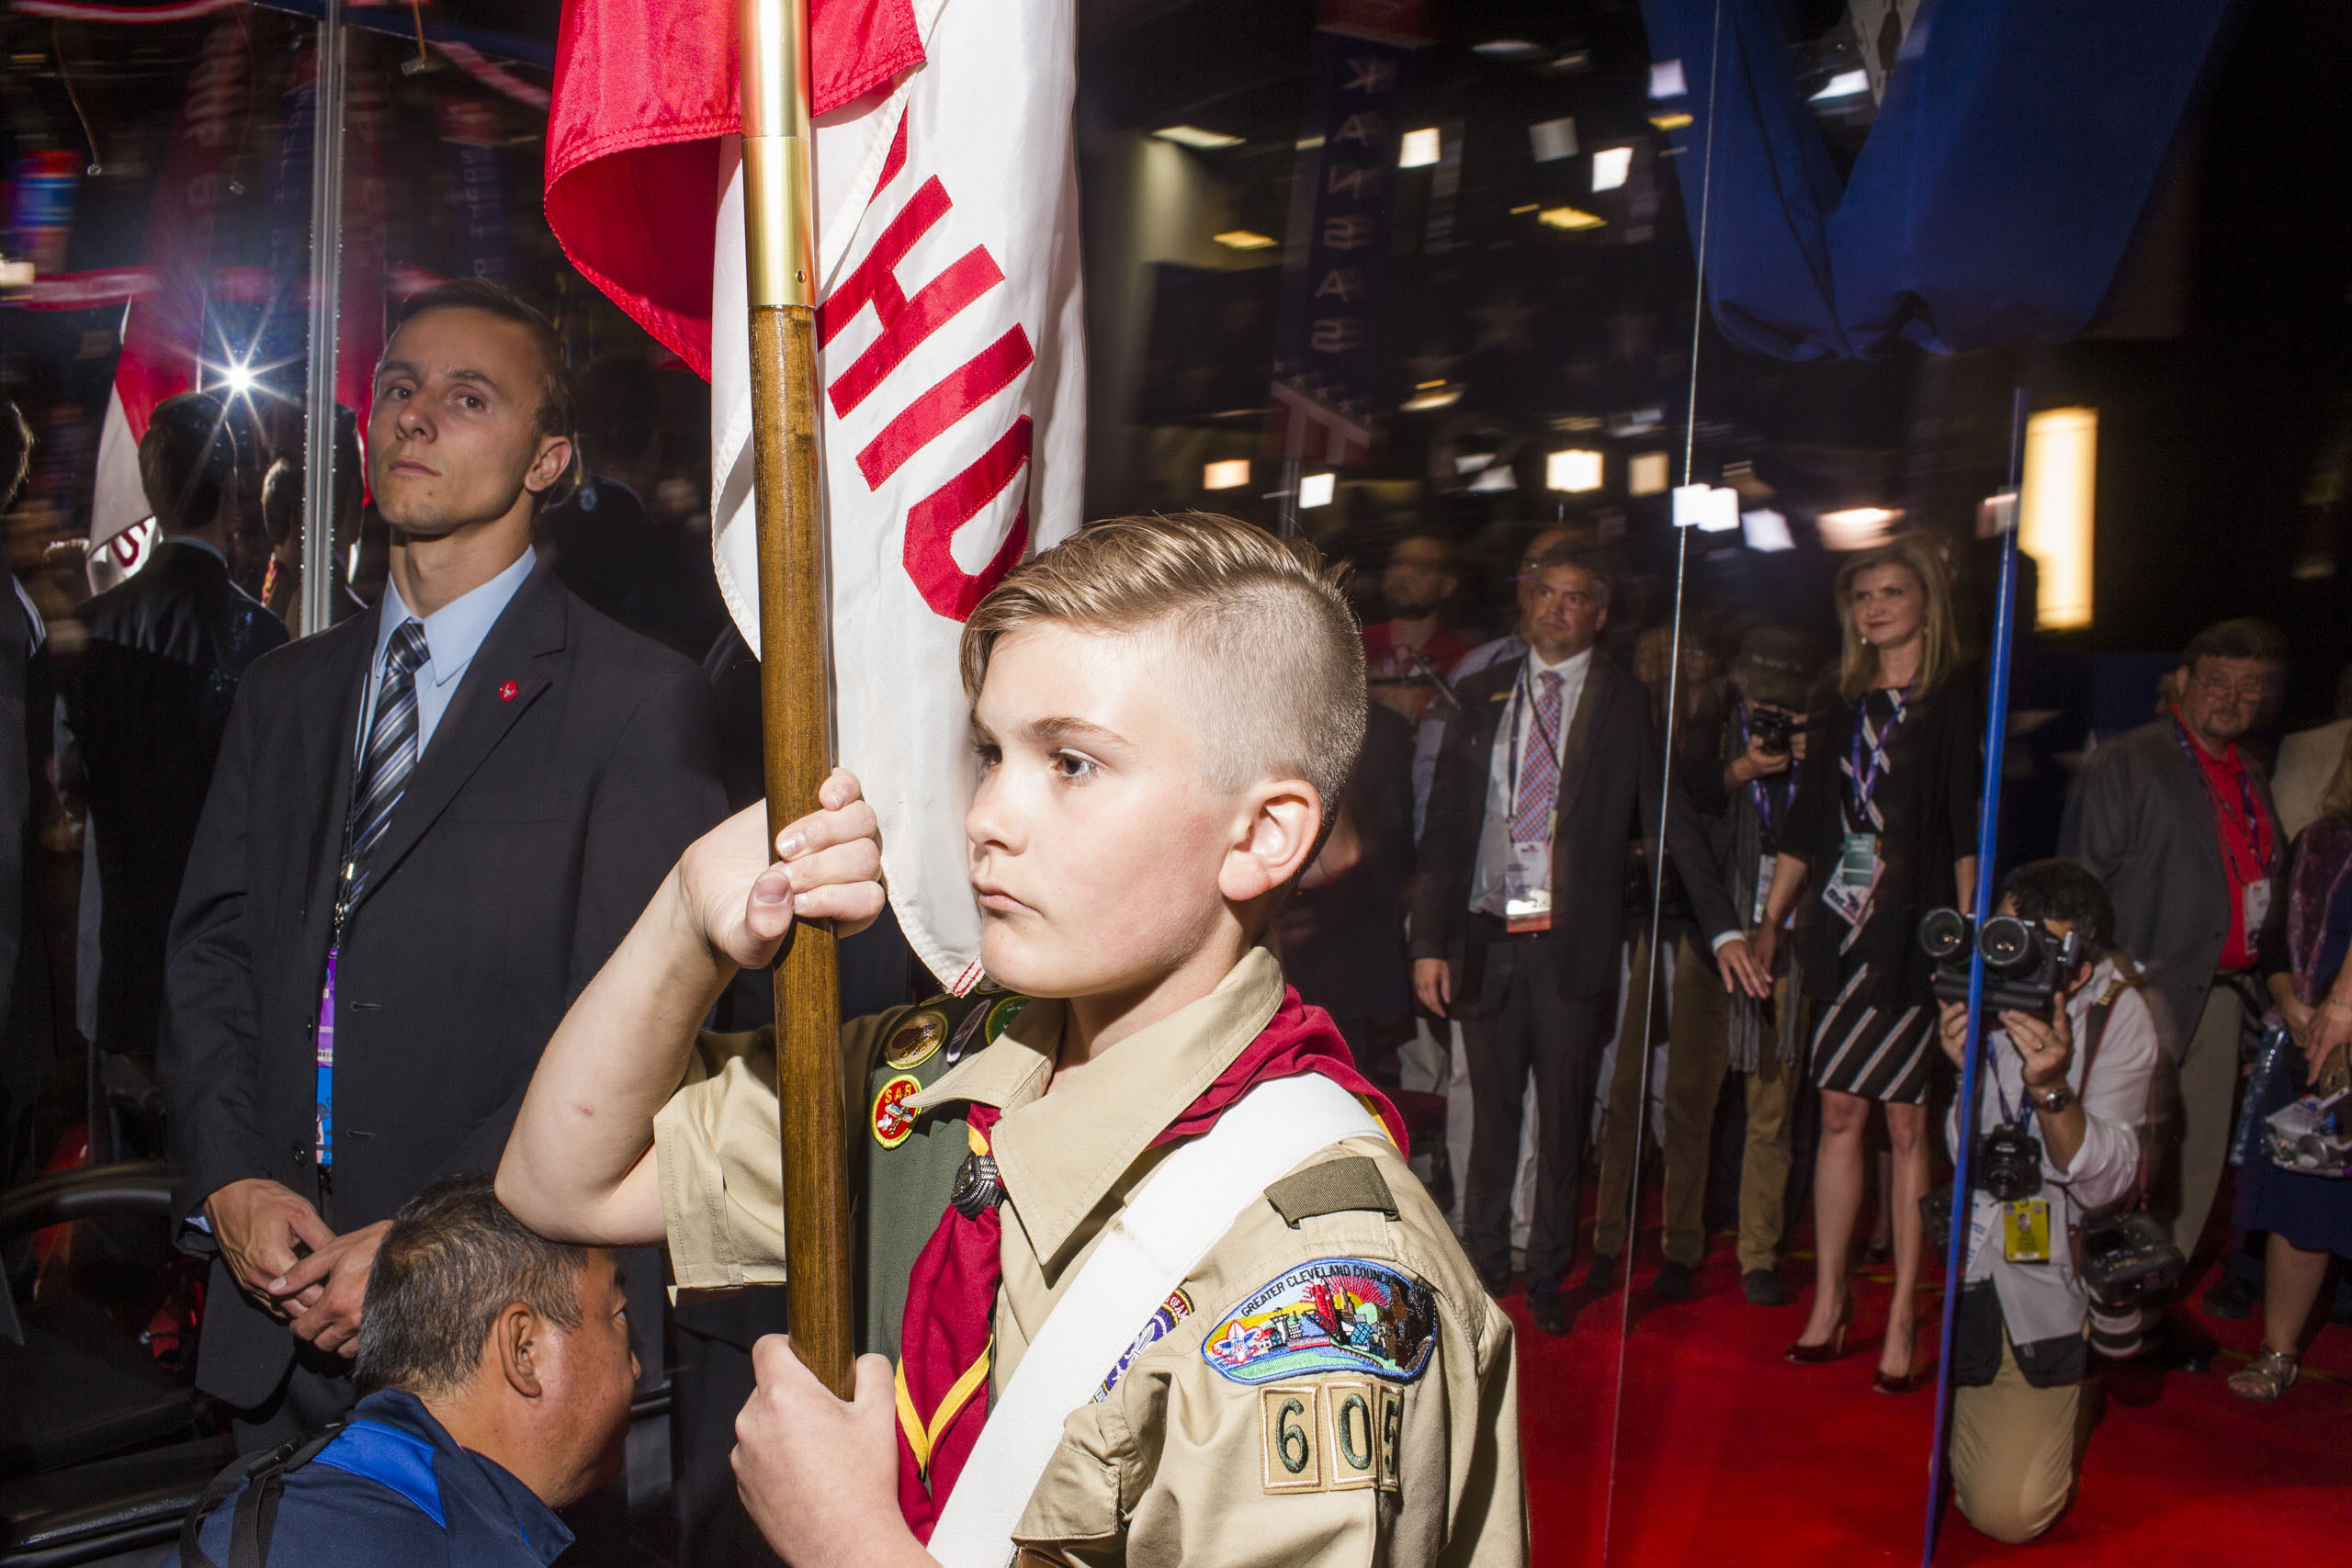 Boy Scouts of America at the opening of the third day of the Republican National Convention, July 20, 2016 at the Quicken Loans Arena in Cleveland, Ohio.